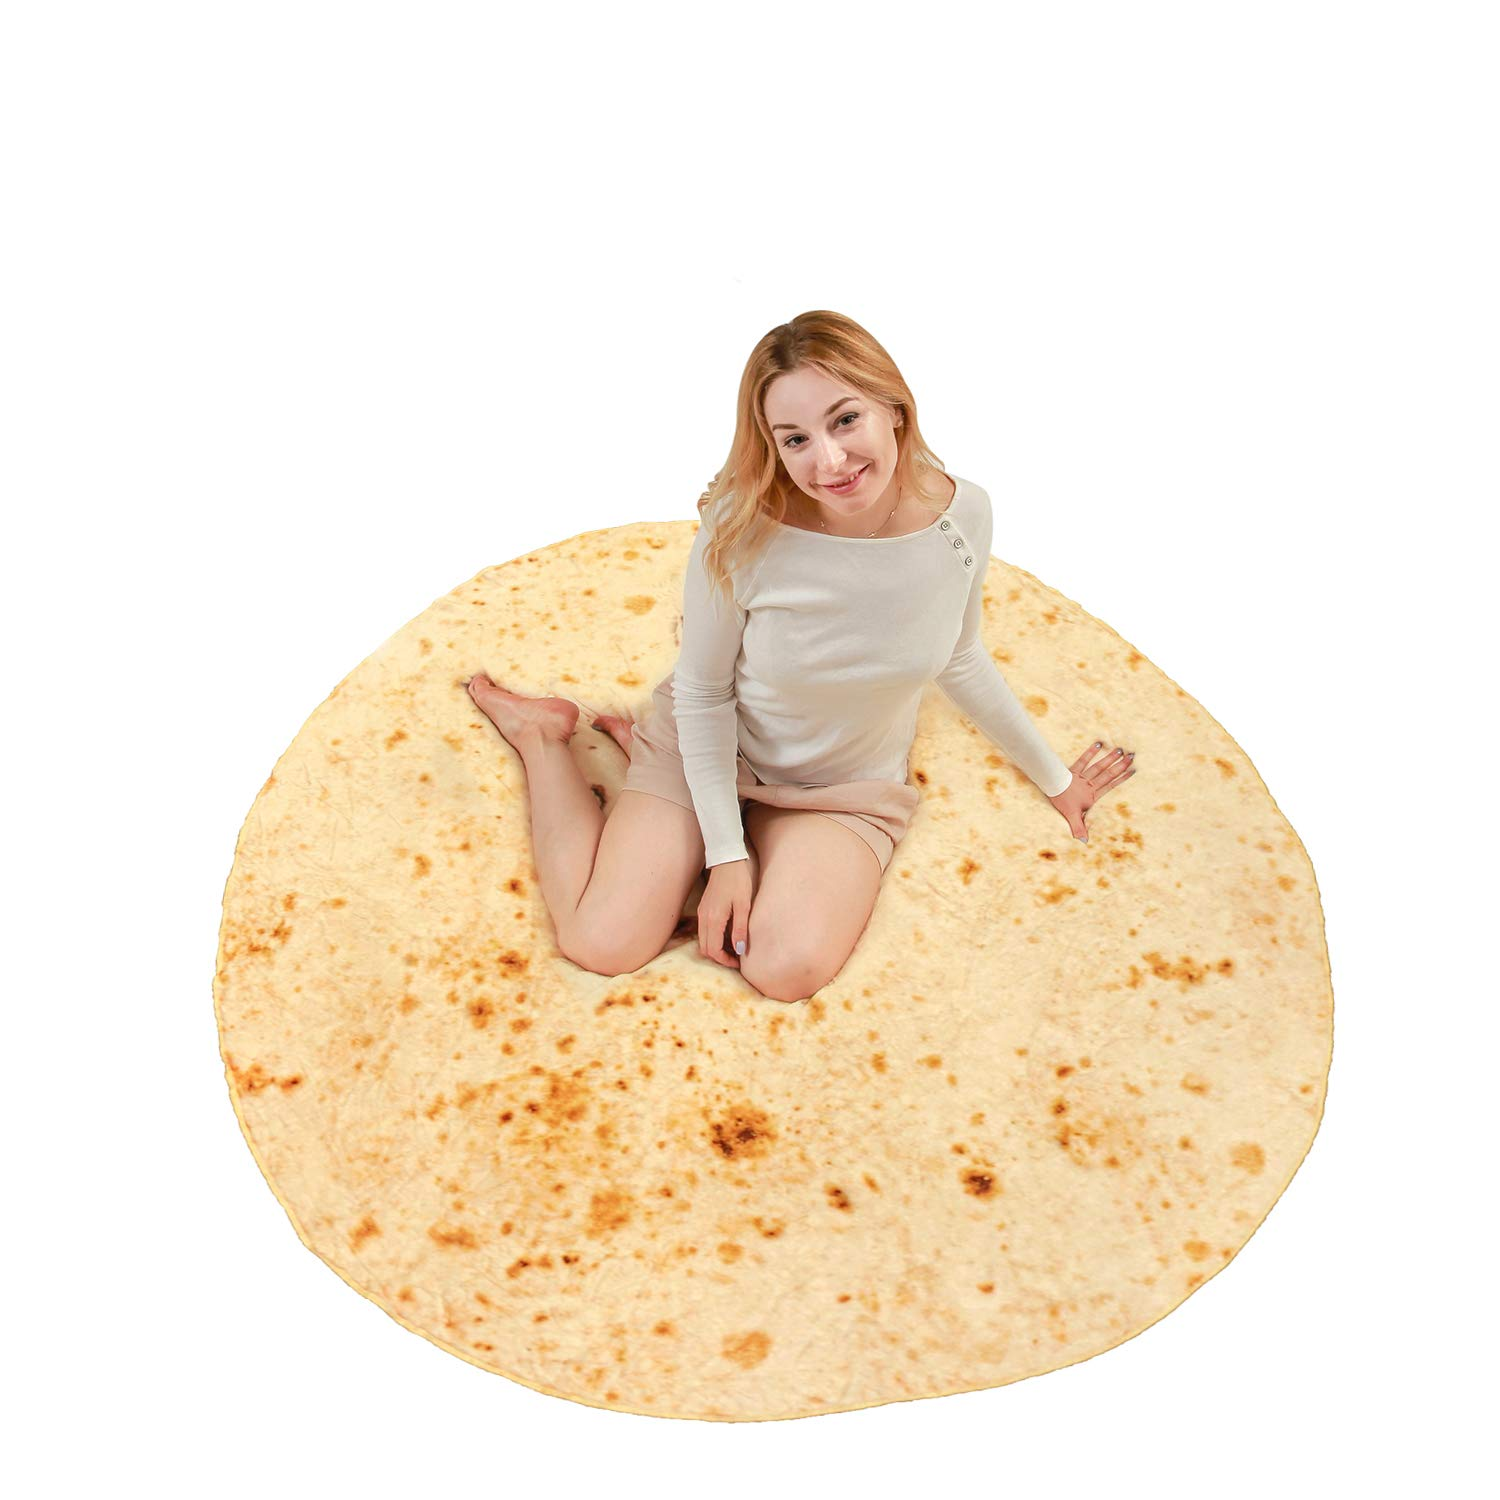 softan Burritos Tortilla Blanket for Kids Teens Adults| Super Soft Flannel Fleece Burritos Wrap Novelty Blanket | Fluffy Round Food Throw for Sofa Couch Bed (71'' Diameter, Pattern A)